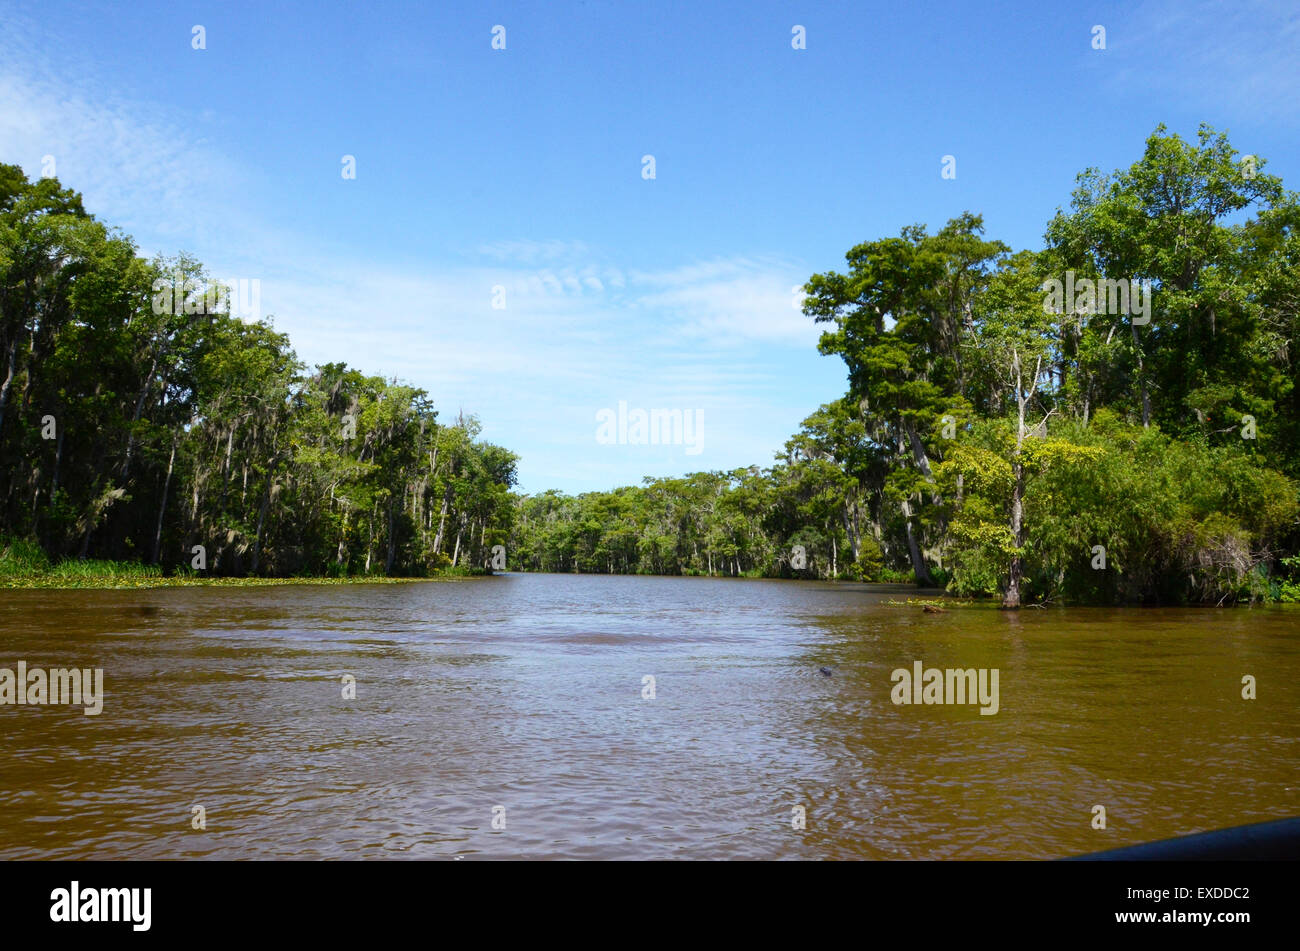 swamp louisiana pearl river bayou new orleans - Stock Image